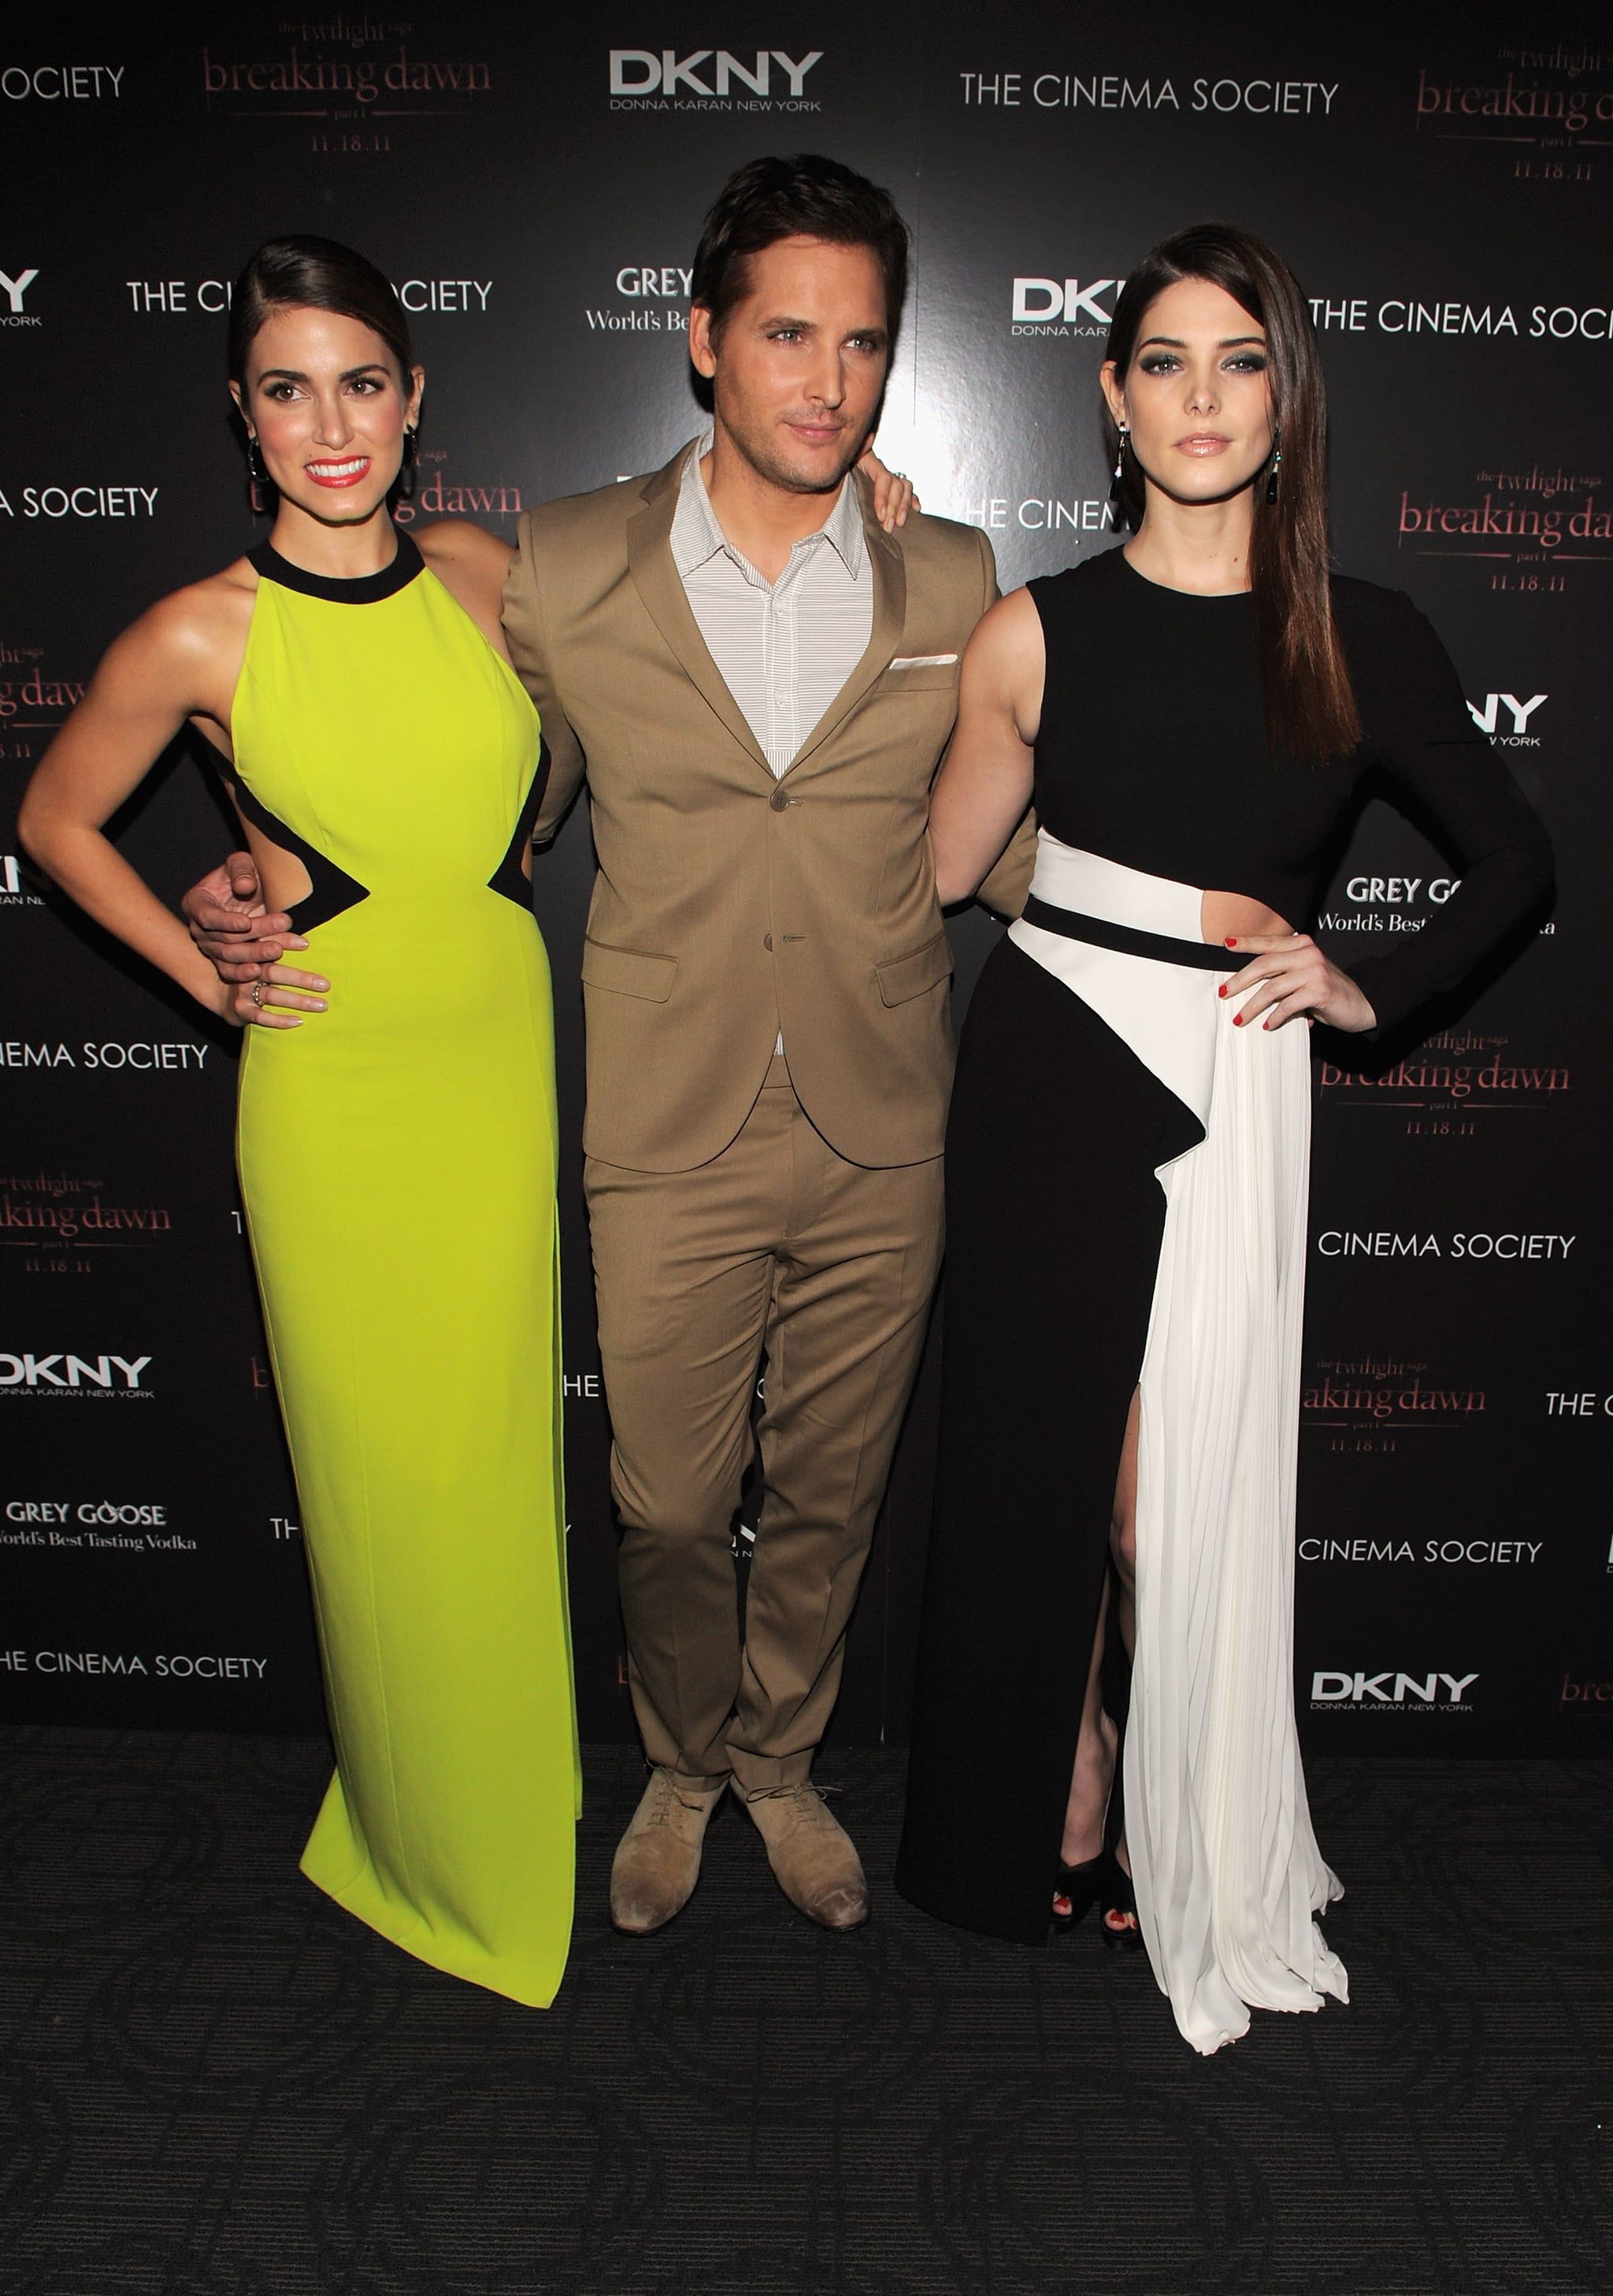 Peter Facinelli posed between Nikki Reed and Ashley Greene at a screening of Breaking Dawn.